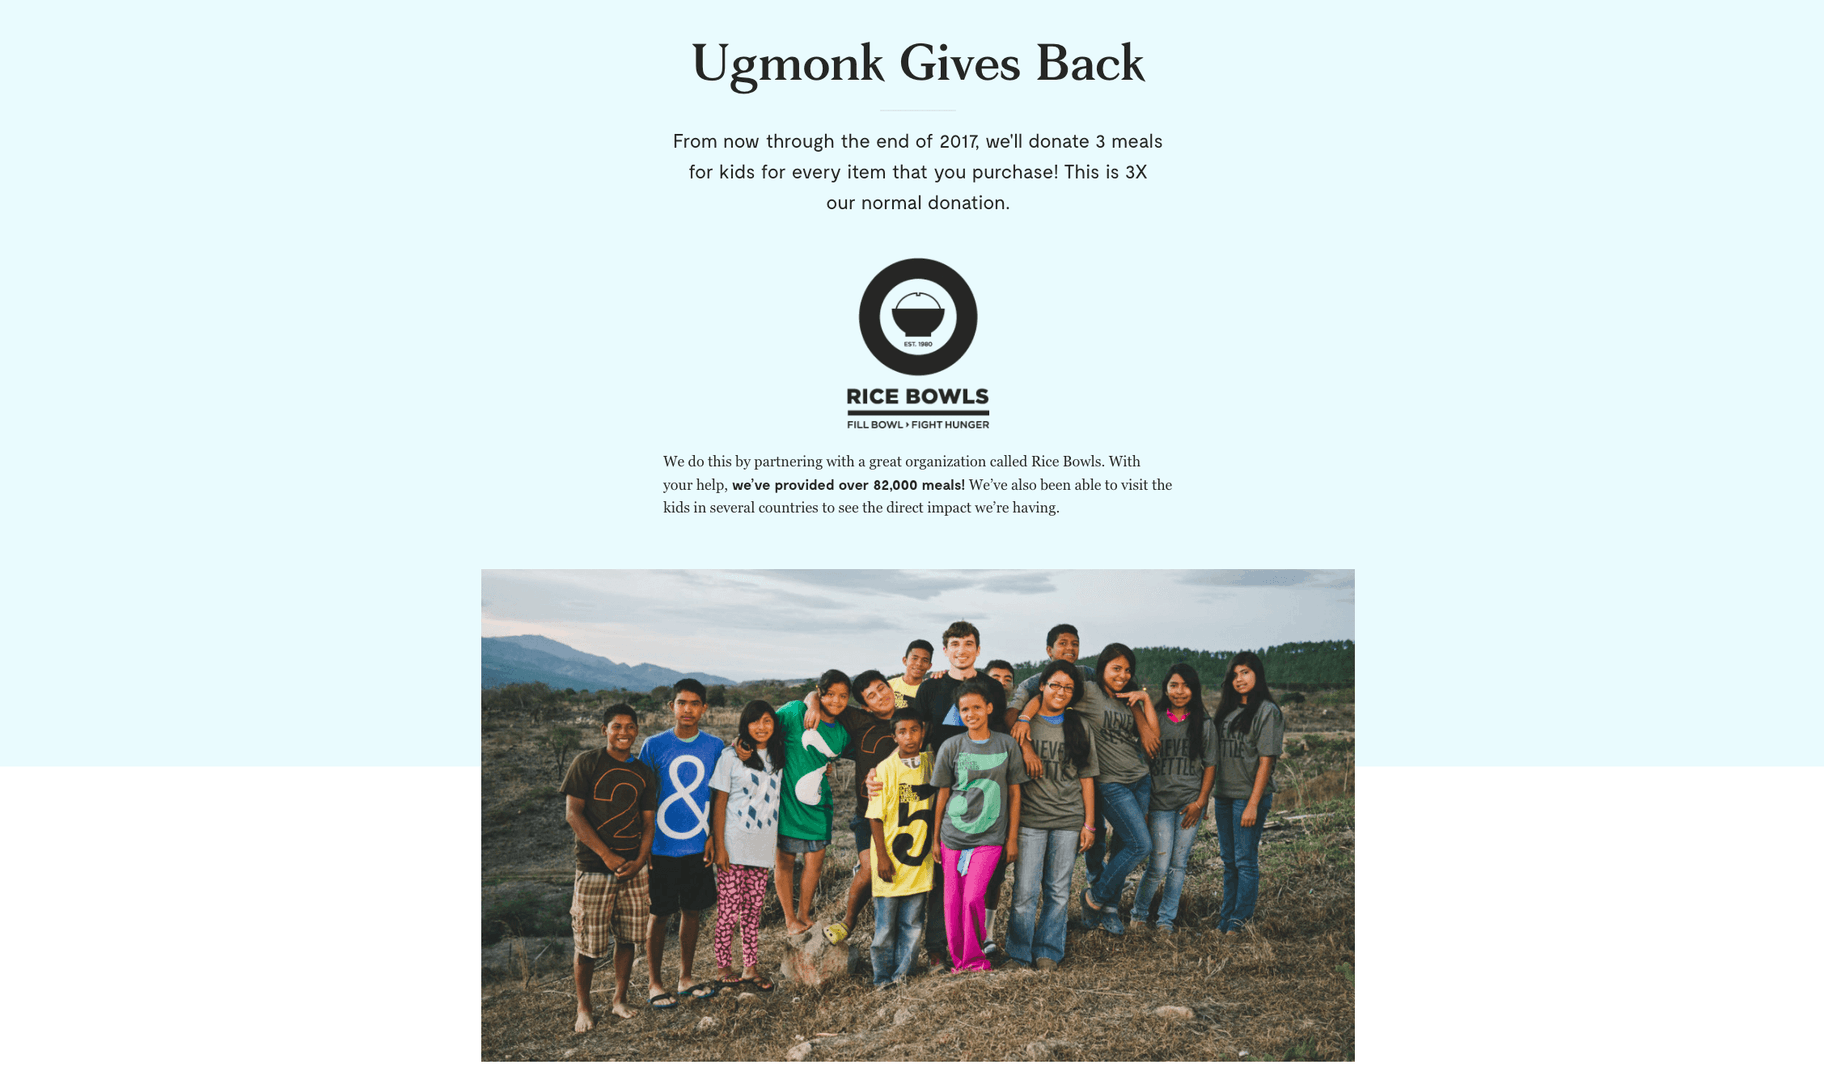 Ugmonk charity work with Rice Bowls